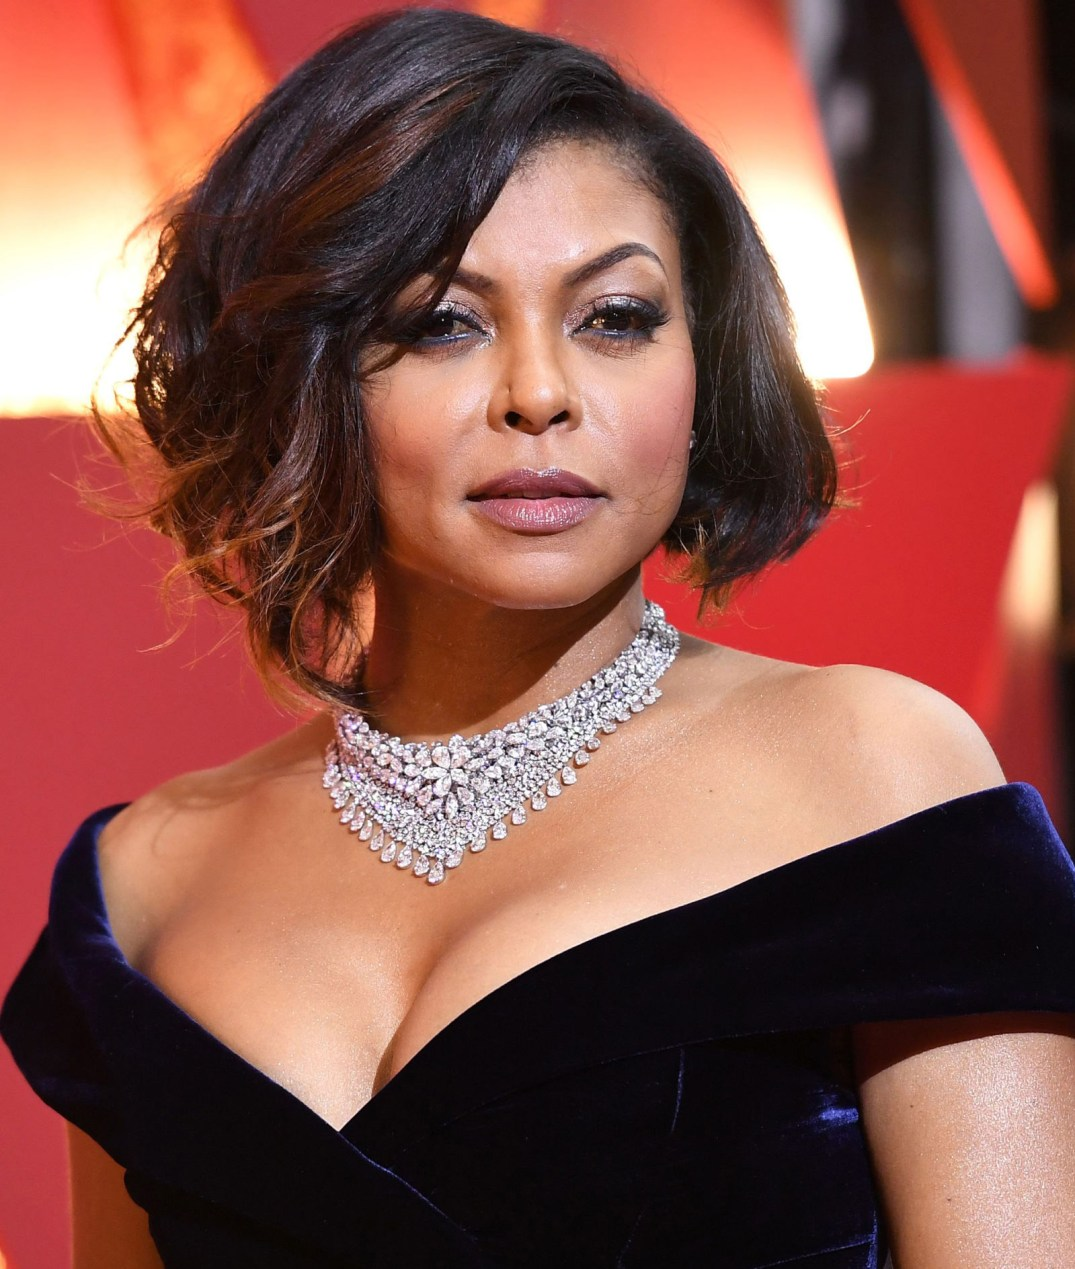 Taraji P. Henson wore a 103 ct diamond necklace from Nirav Modi's Luminance collection. She also wore his Evergreen Emerald Ring, colored stone and diamonds over 8 carats. PC-Harper's Bazaar